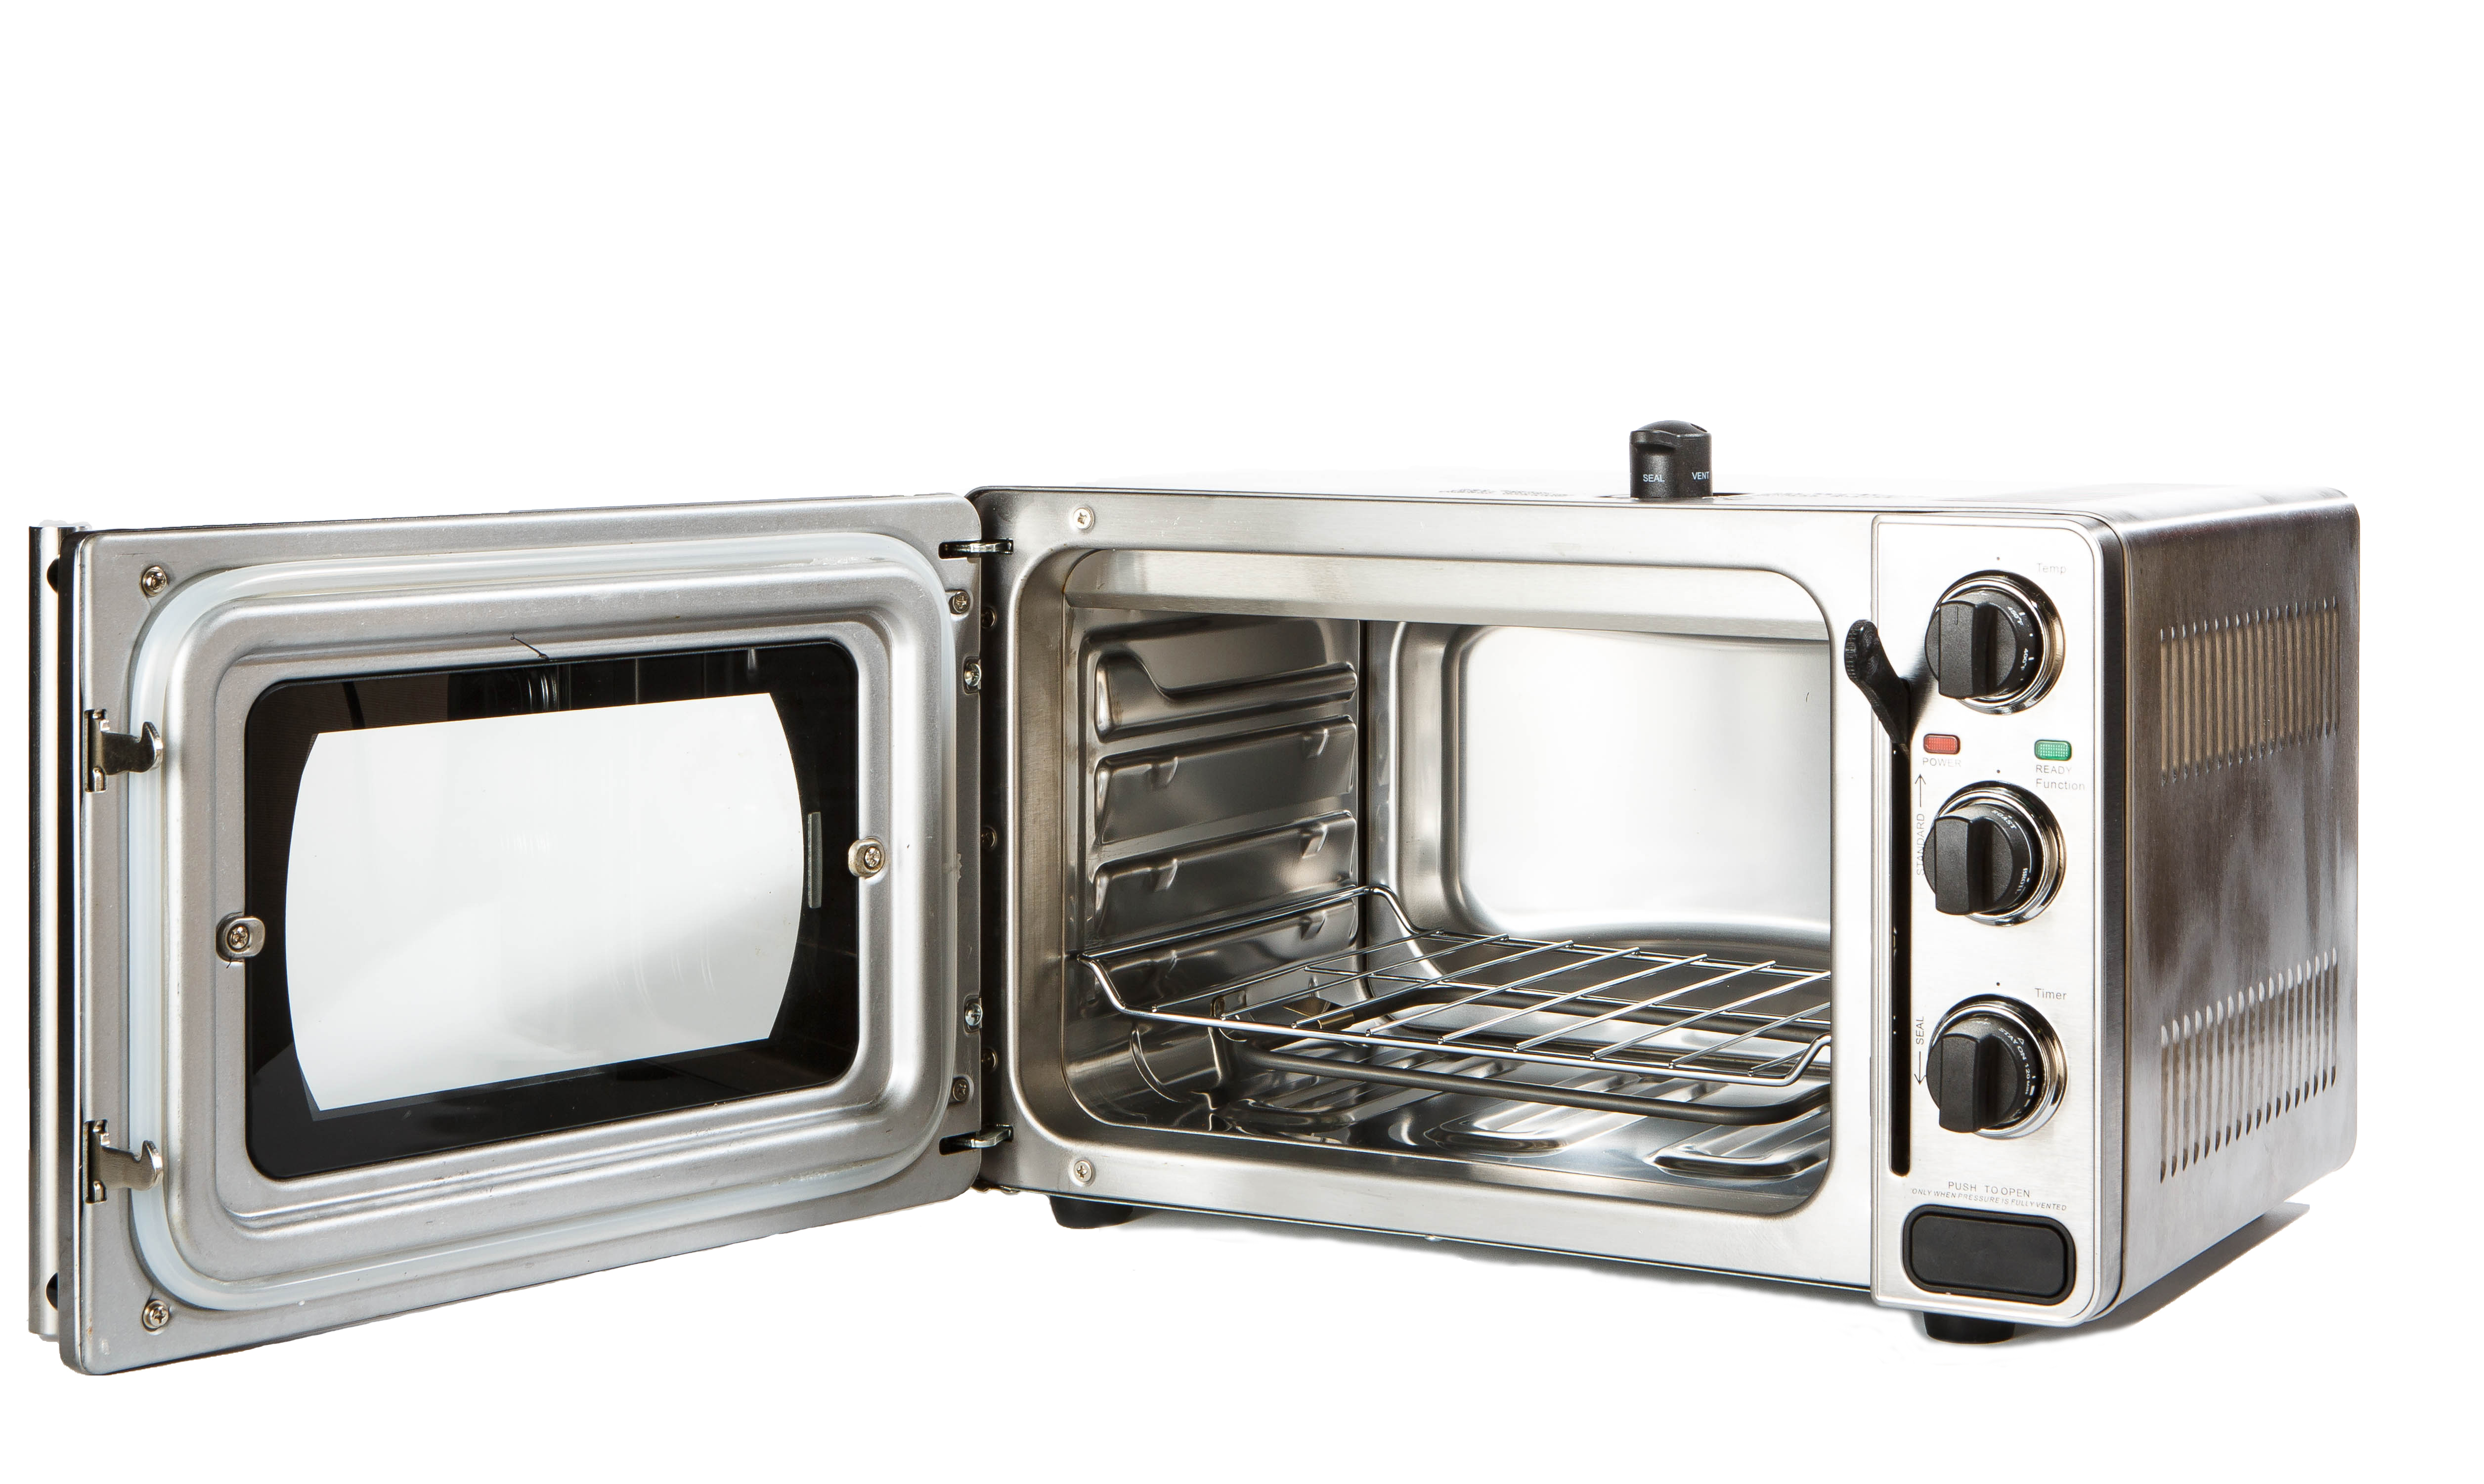 Wolfgang puck pressure oven essential series for Wolfgang puck pressure oven